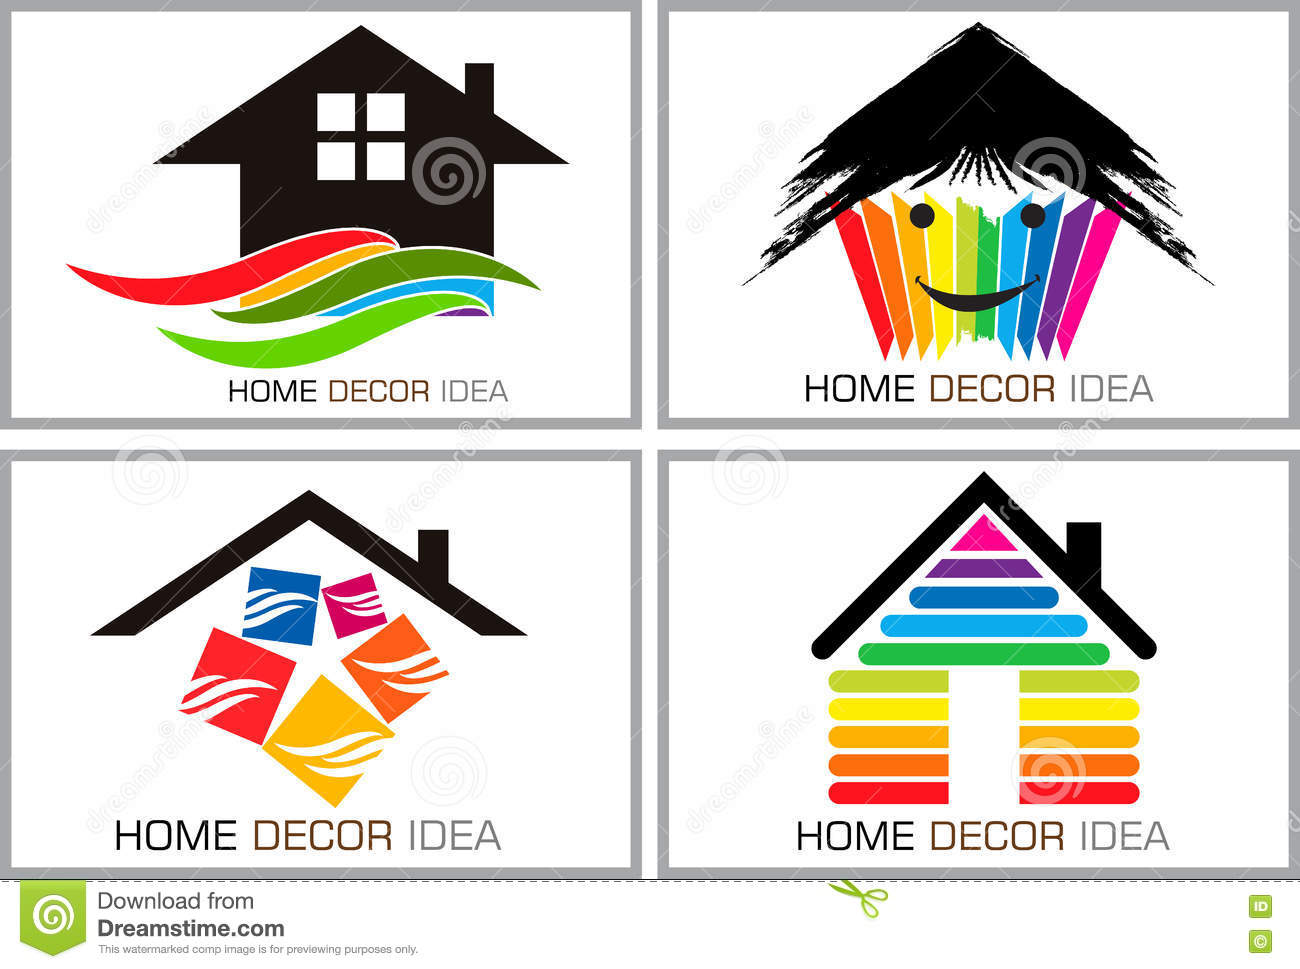 Home decor idea logos stock vector. Illustration of icon ...